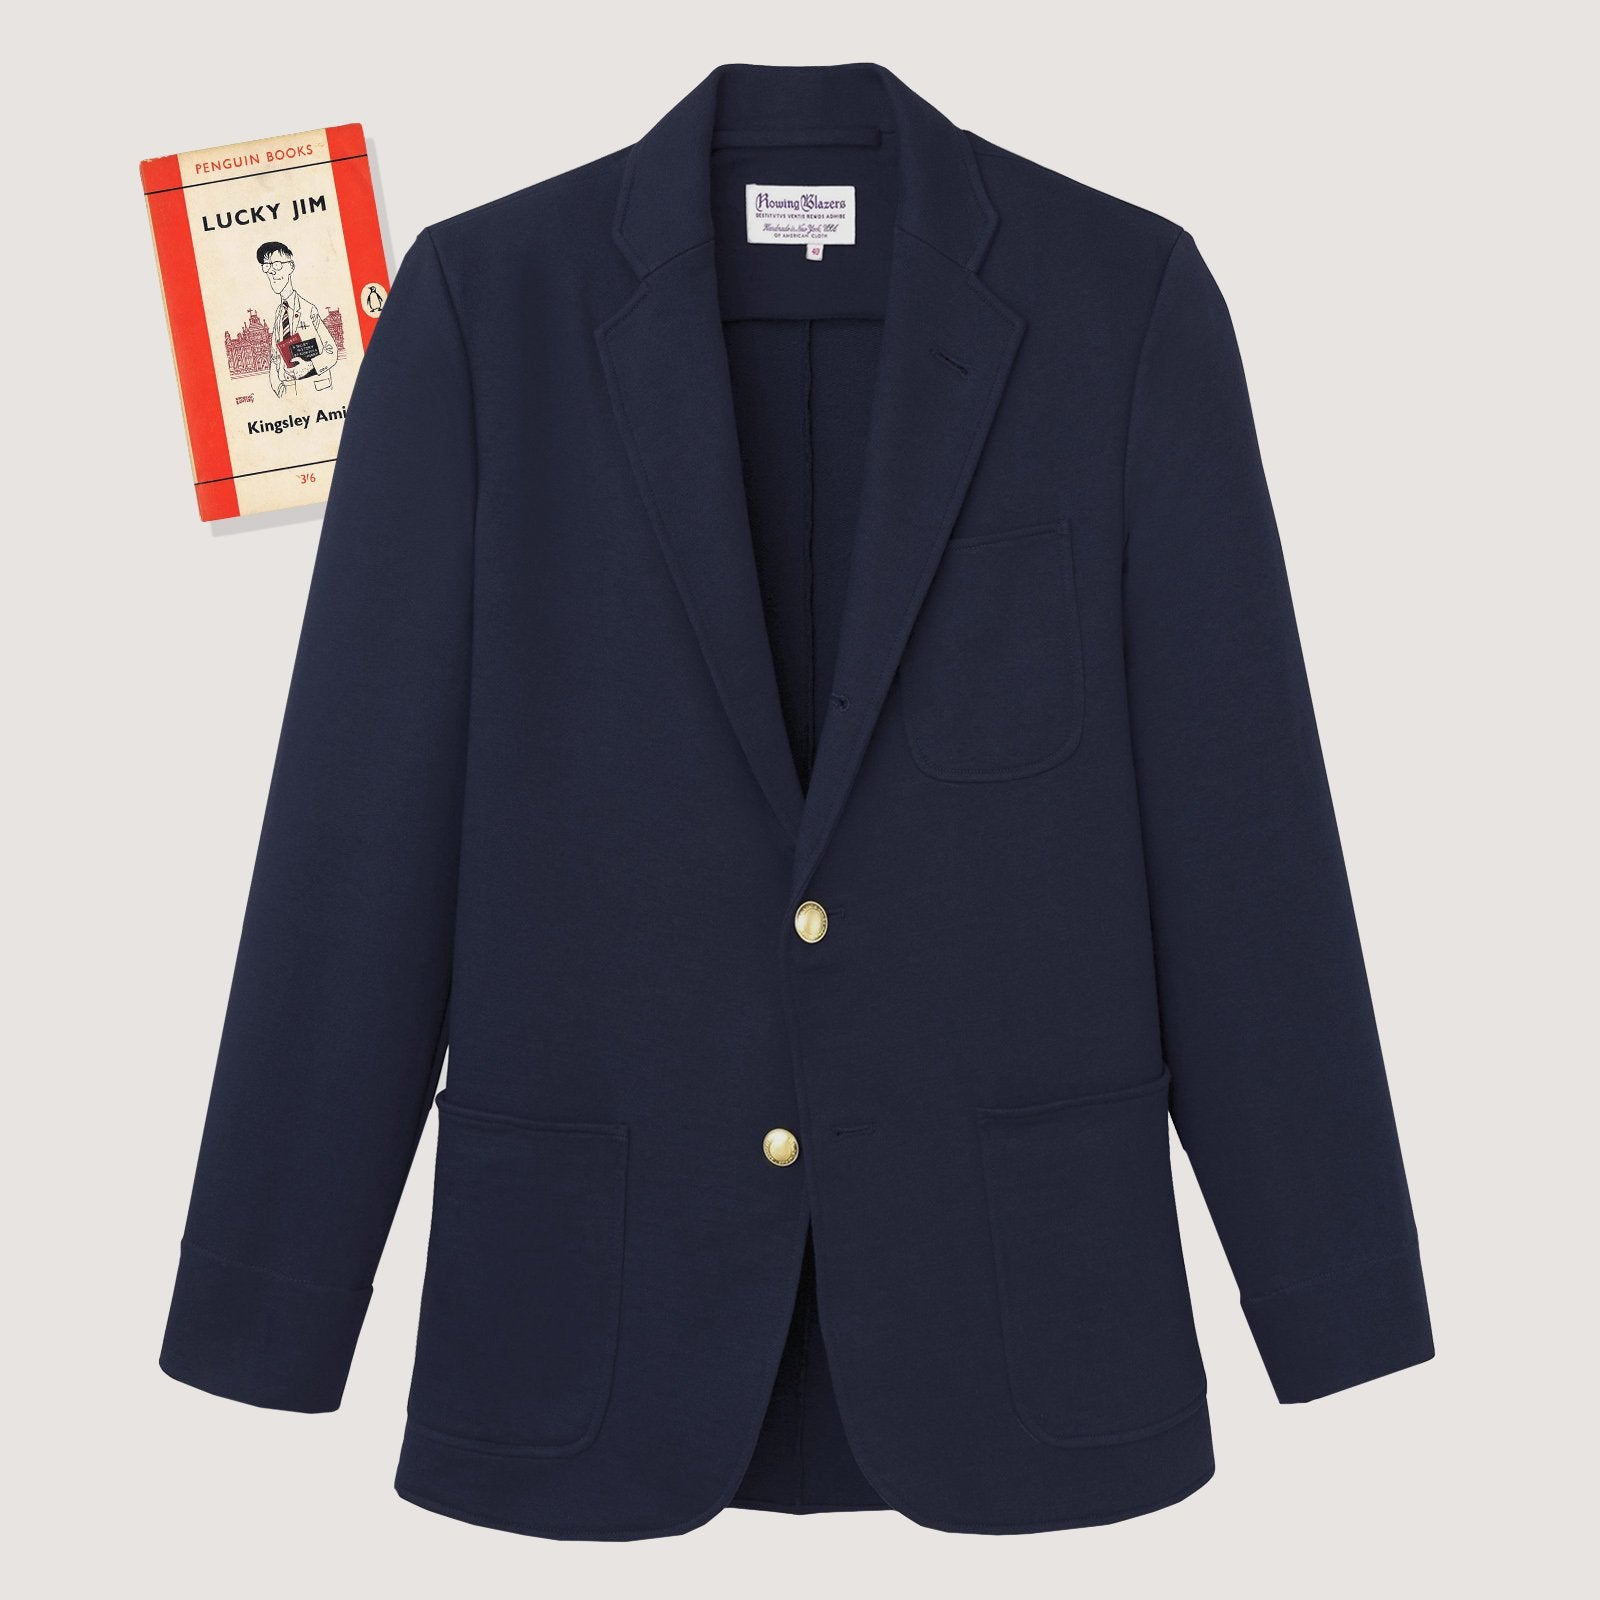 Rowing Blazers Navy Cotton Blazer With 'Swelled Seam' Topstich